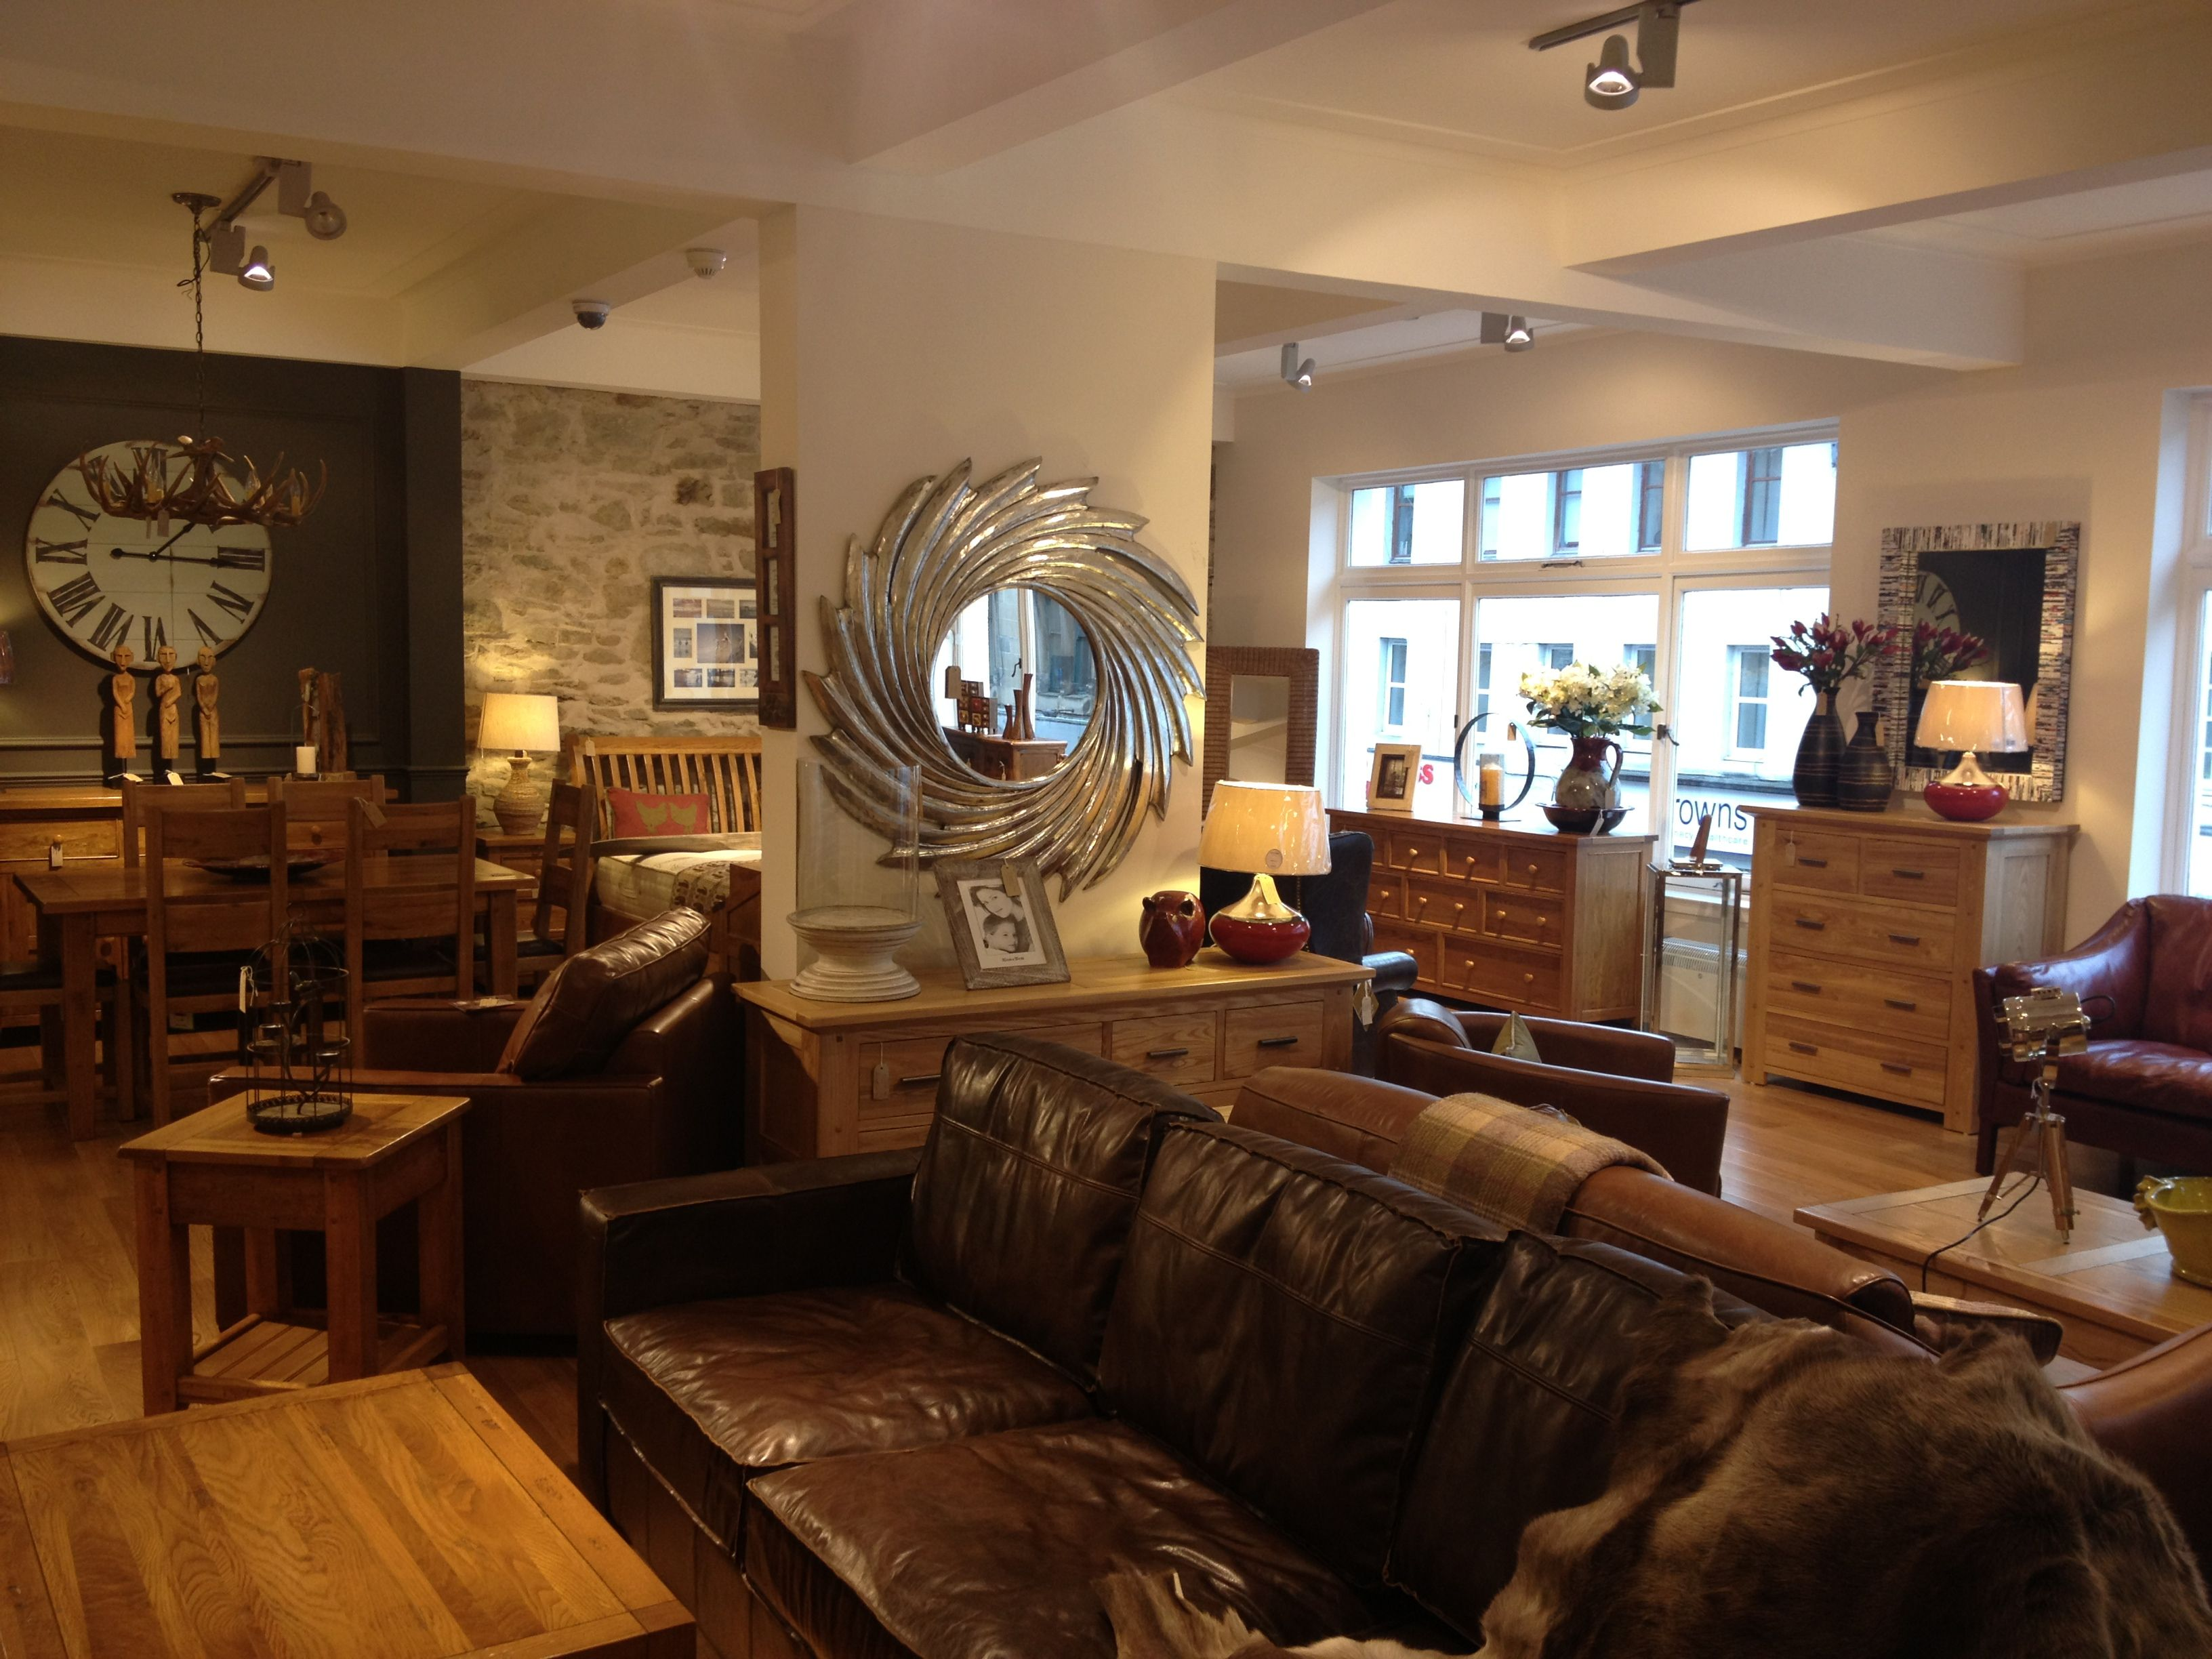 Loft Perth More From The Loft Furniture Shop In Perth Unique Furniture